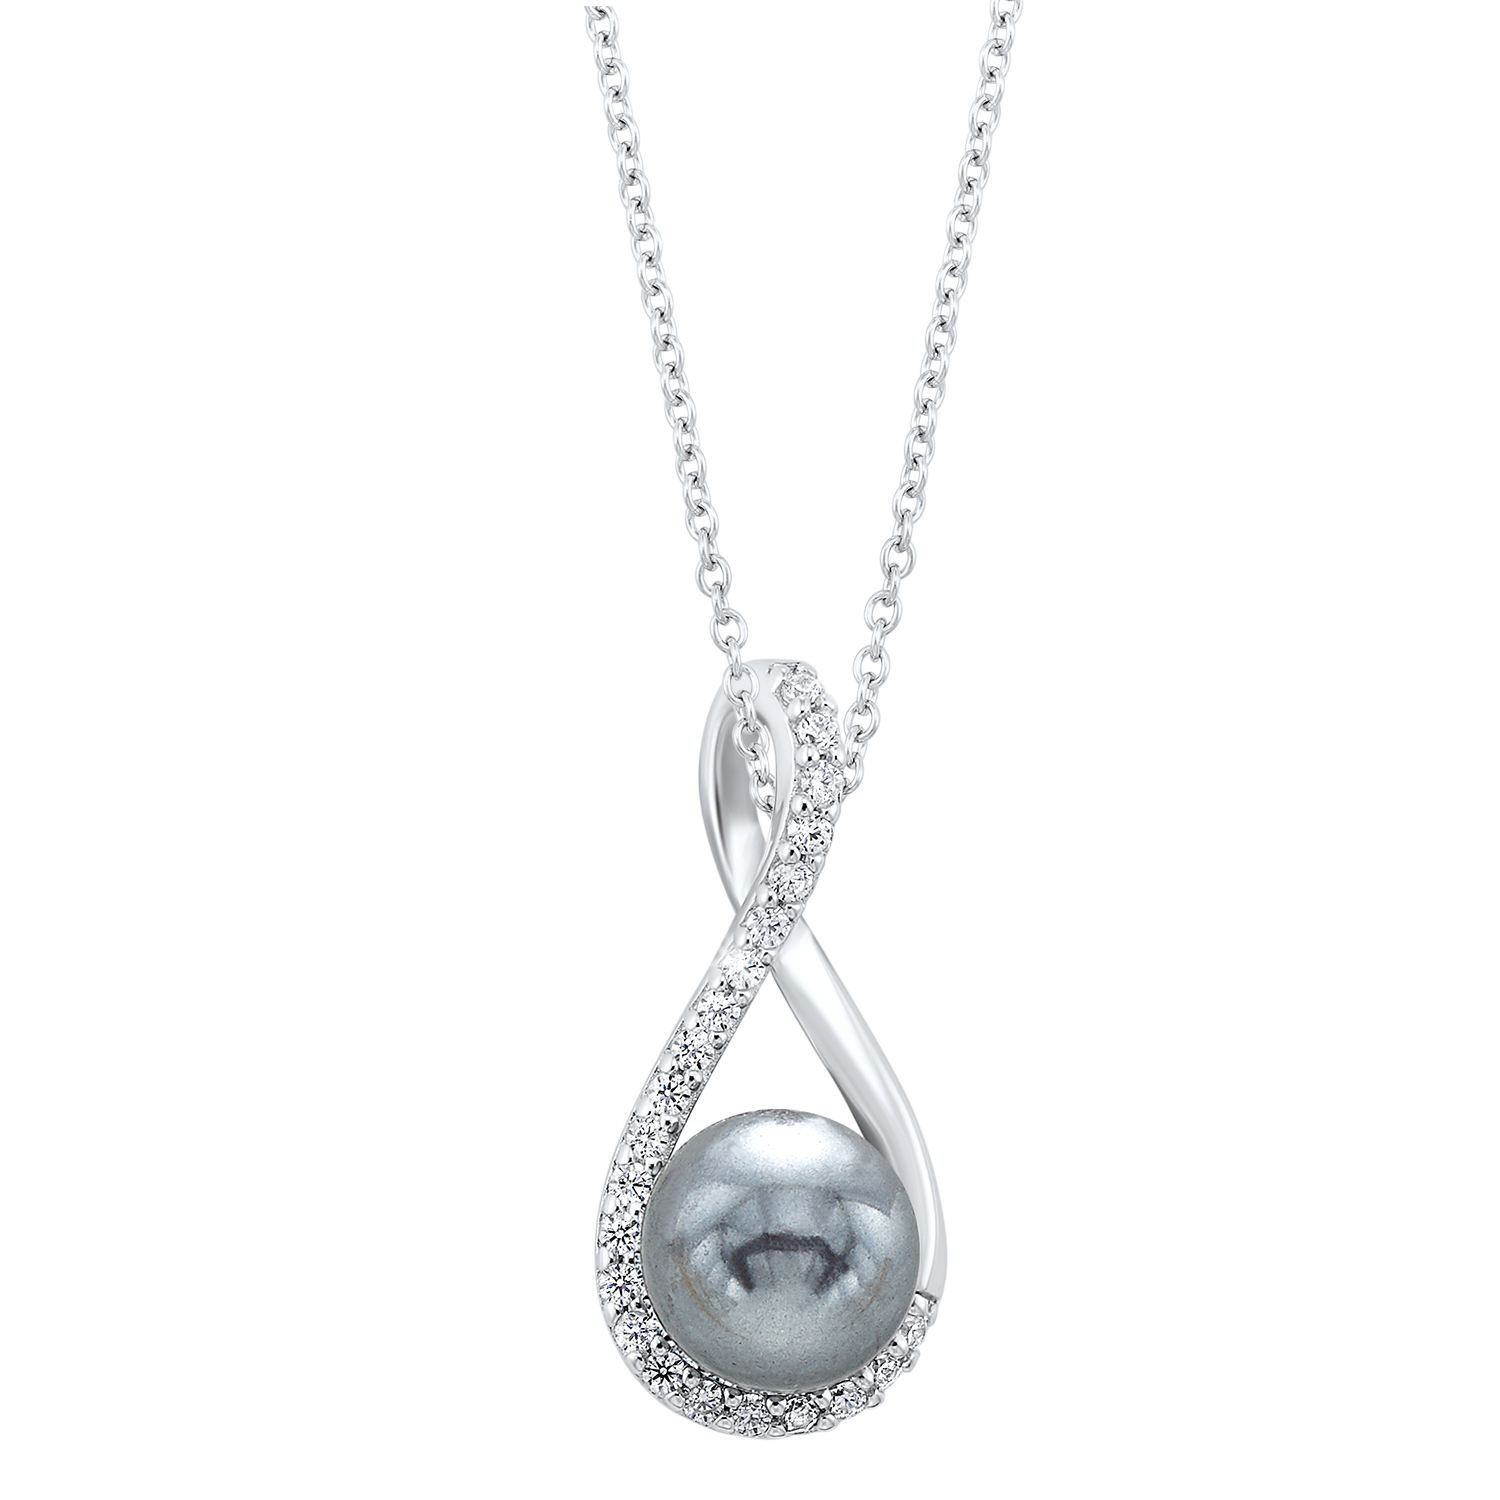 Twisting Shell Pearl Pendant in Sterling Silver by Gems One